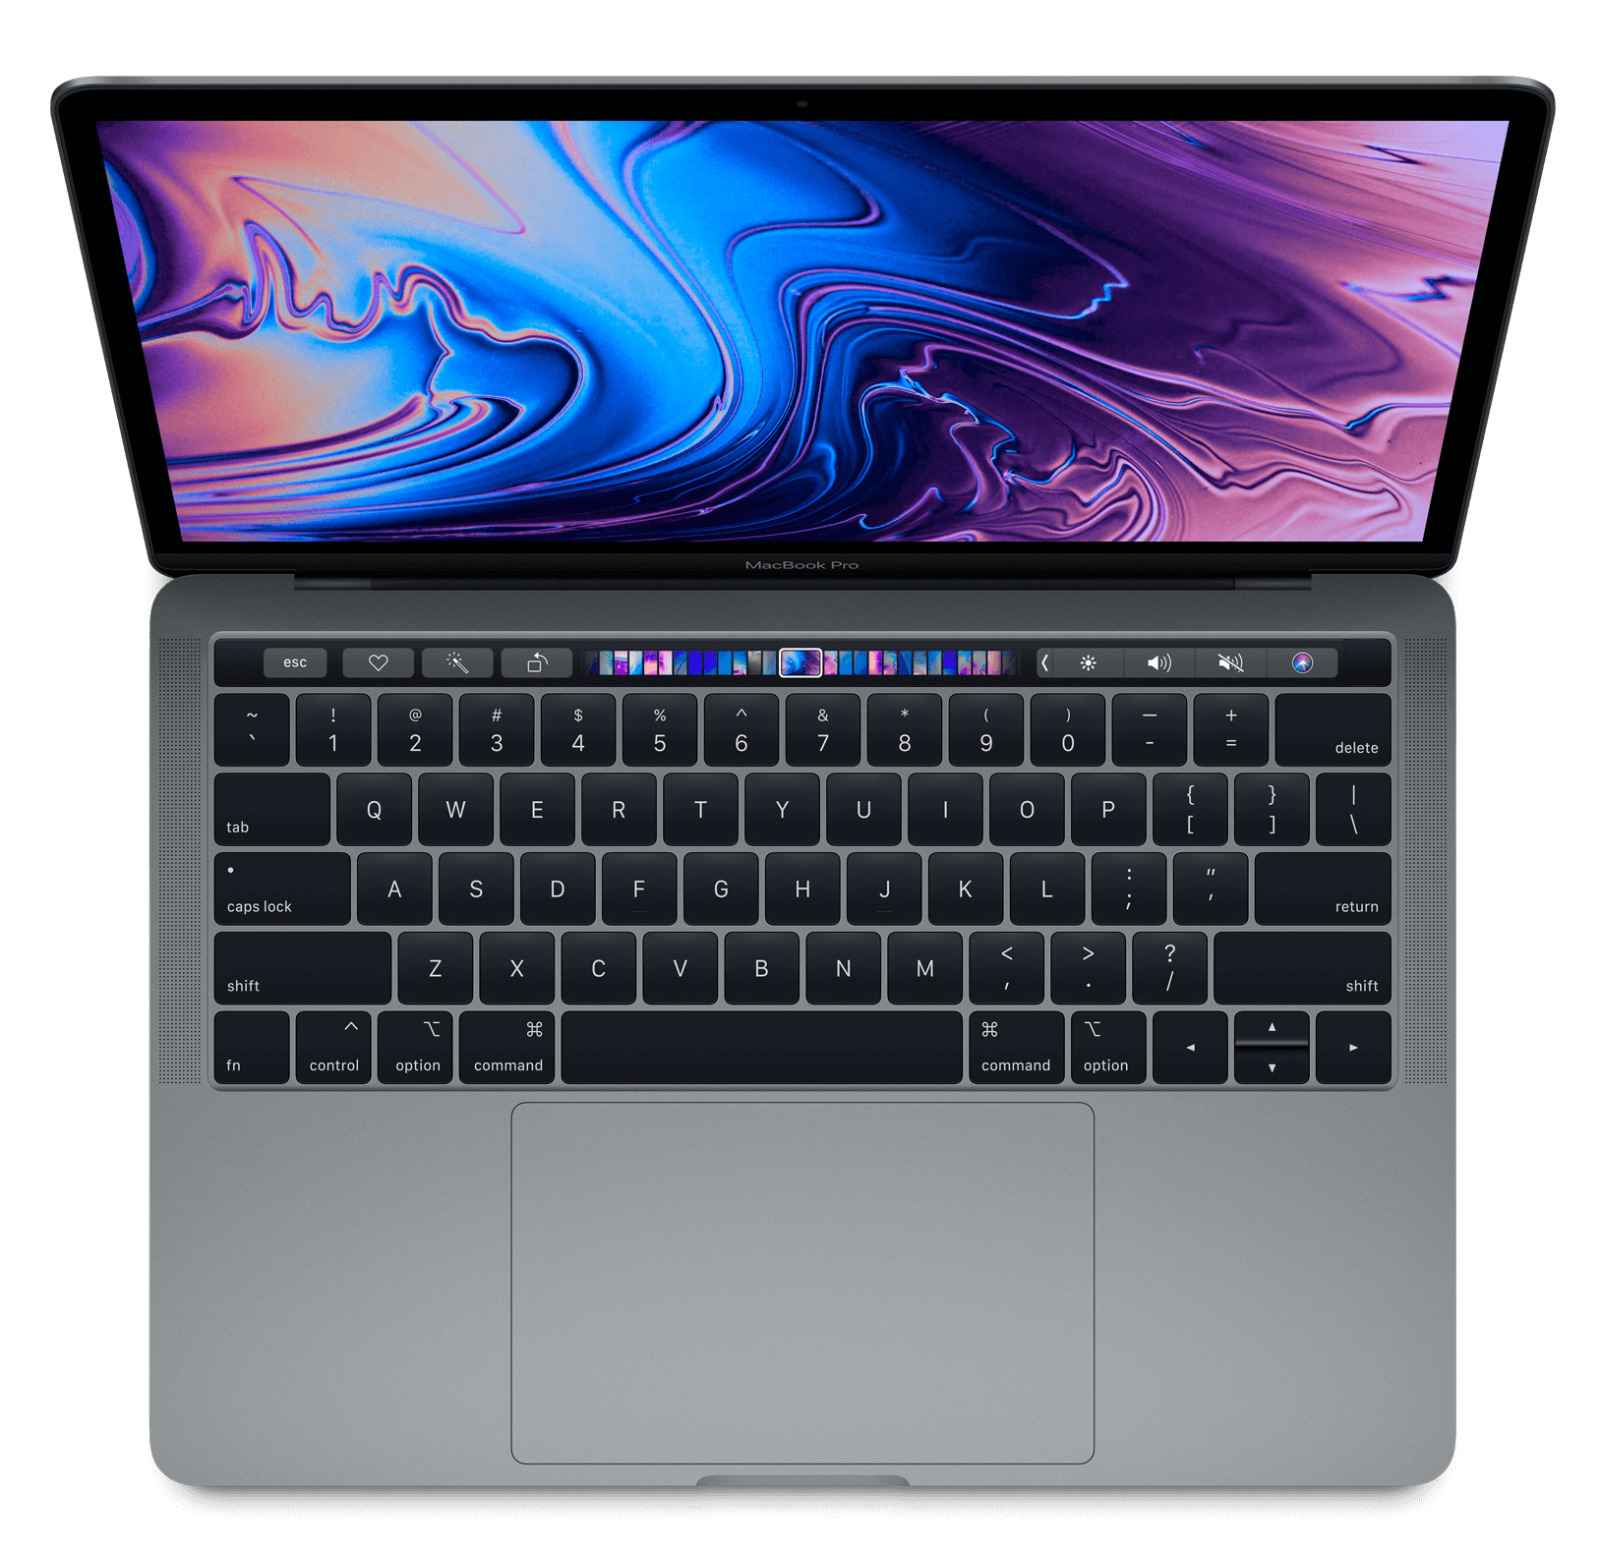 Apple MacBook Pro 13 TOUCH BAR | Space Gray | Touch ID | CORE i7 | 512GB | 16GB. Buy it now for 1249.00